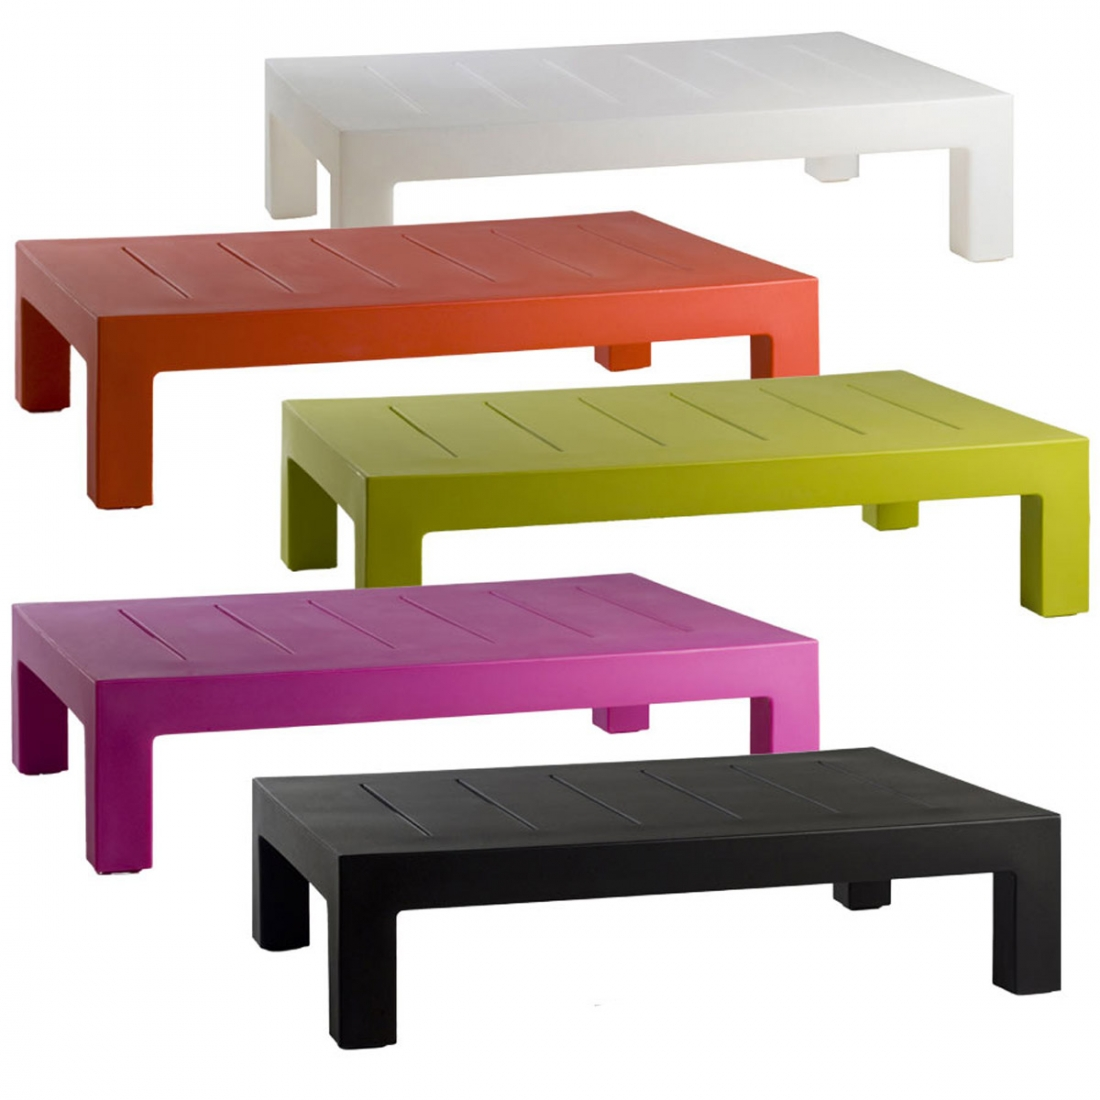 Table basse design d ext rieur jut par vondom for Table exterieur plastique noir